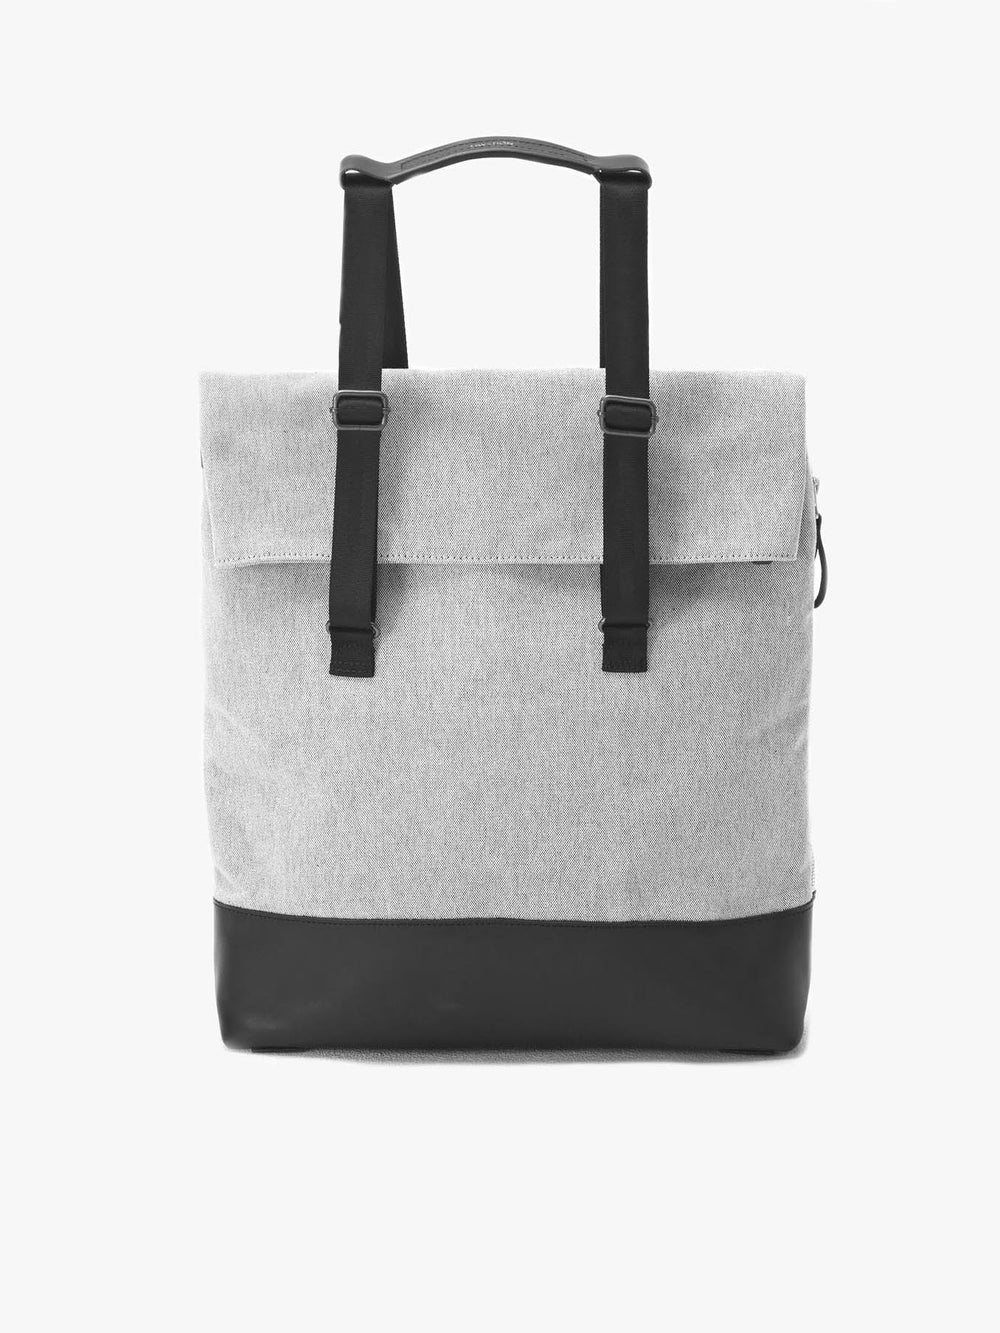 Qwstion Day Tote in black vegetable-tanned cowhide and organic cotton